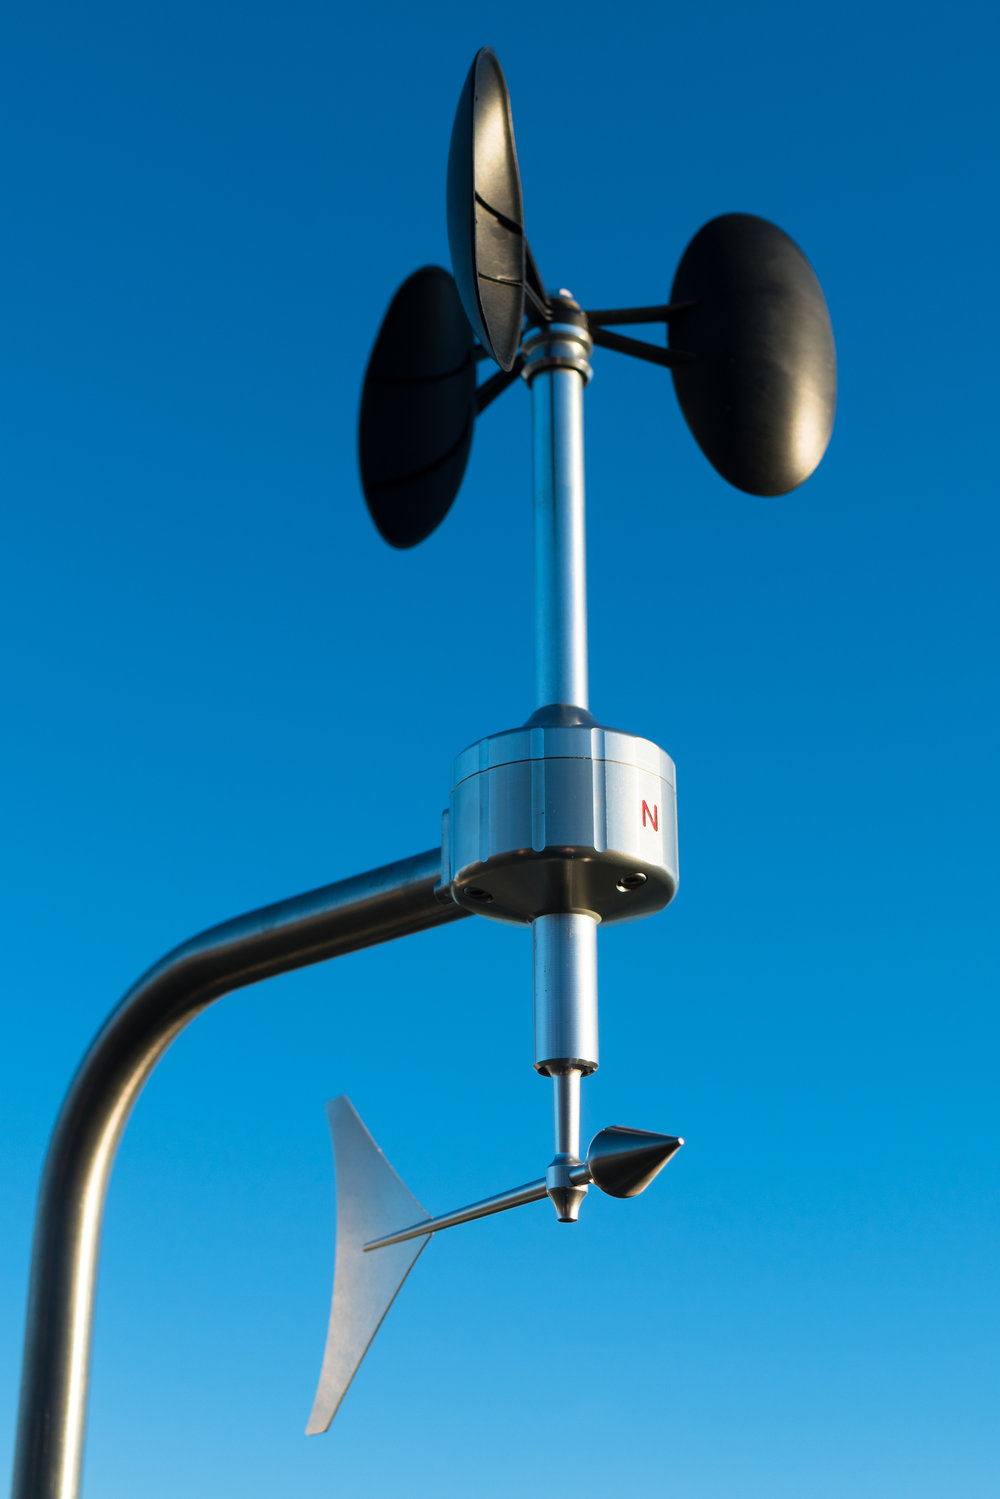 MeteoWind 2 MEASNET calibrated anemometer